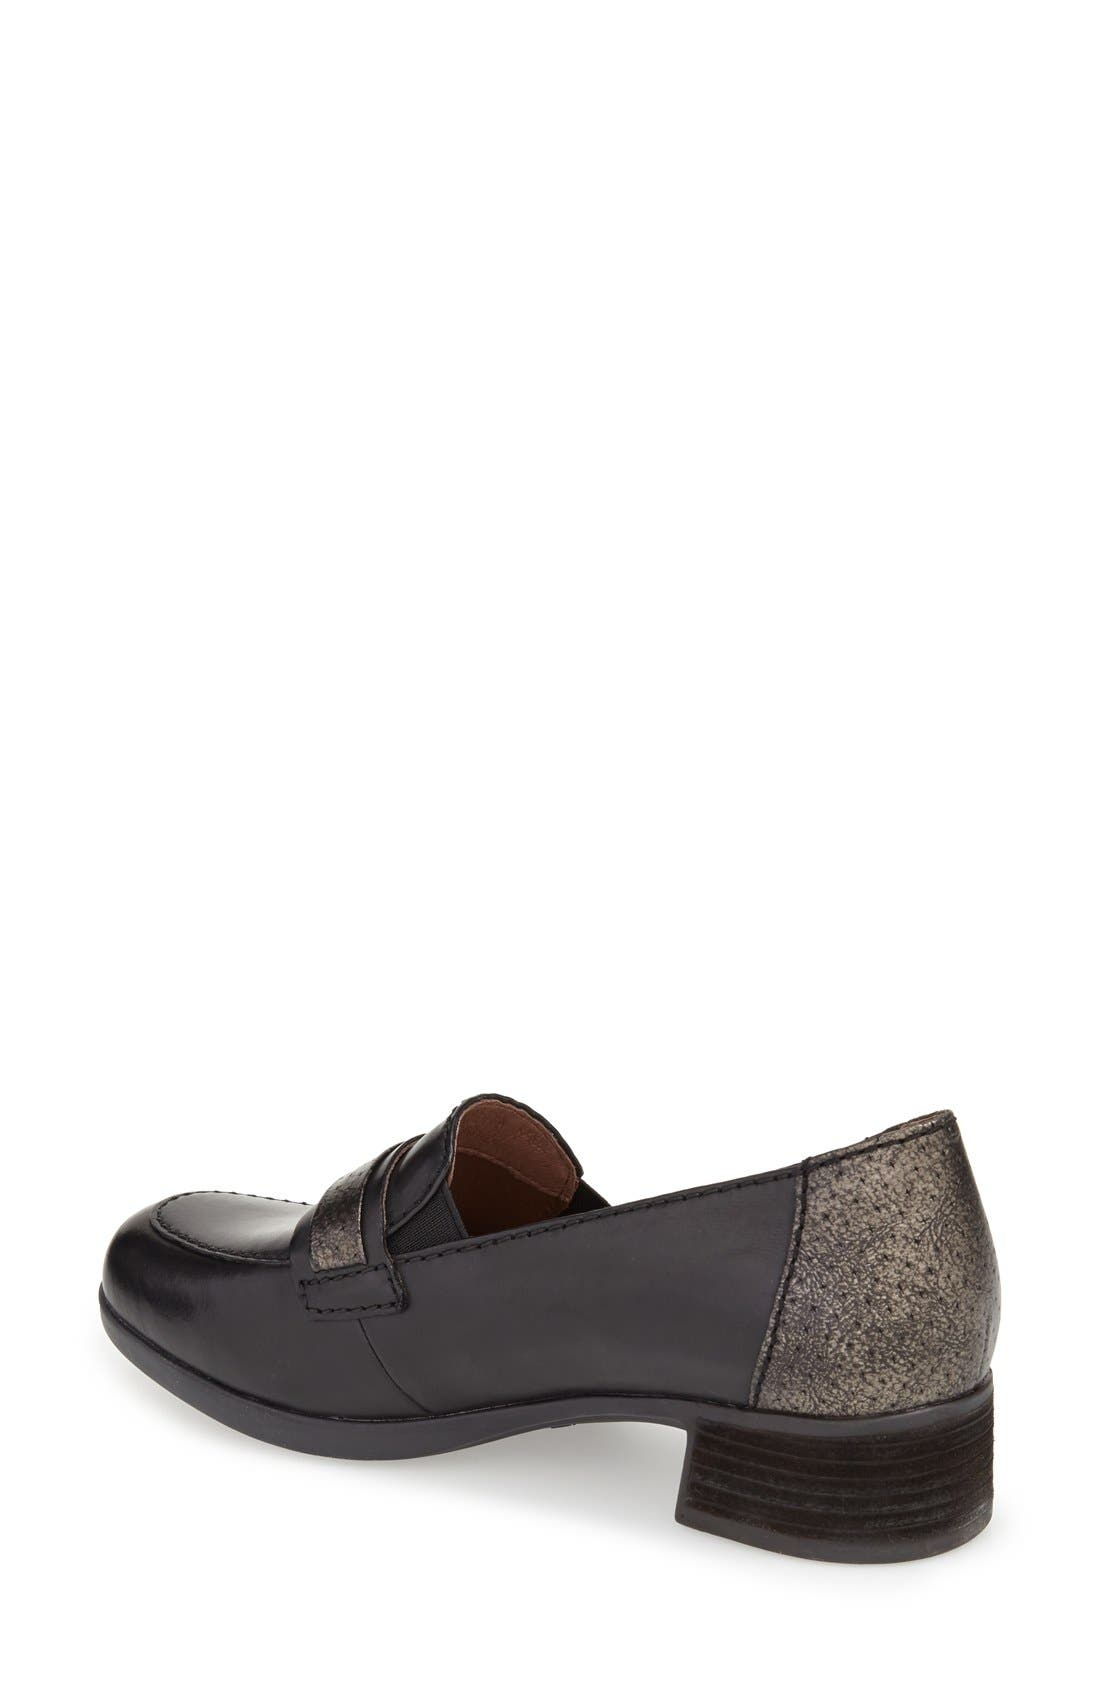 'Lila' Loafer,                             Alternate thumbnail 2, color,                             001